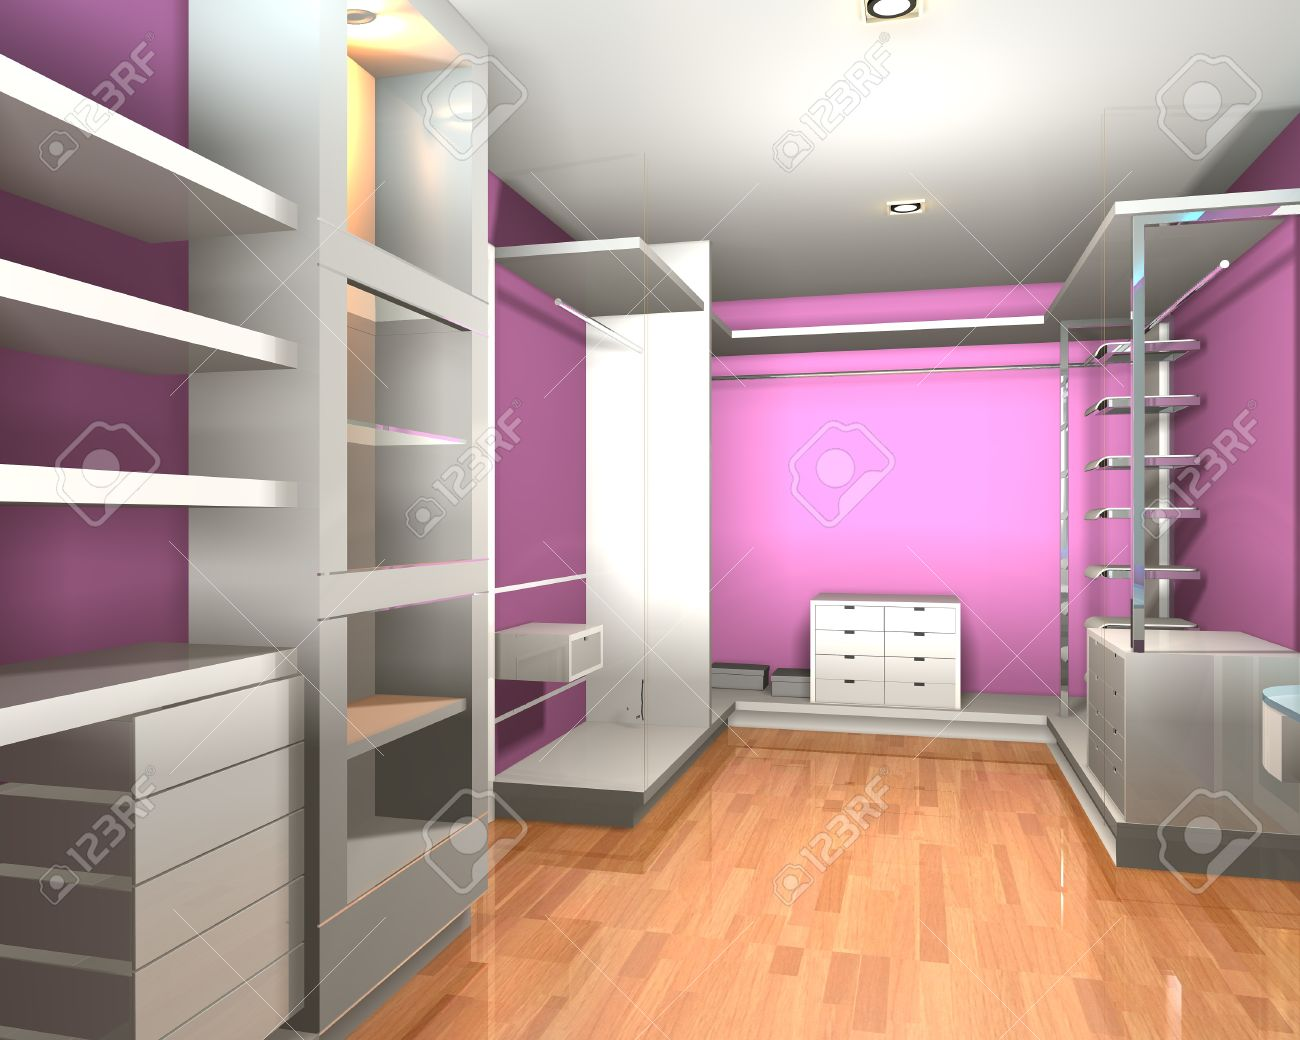 empty walk in closet. Empty Interior Modern Room For Walk In Closet With Shelves And Pink Wall. Stock Photo O